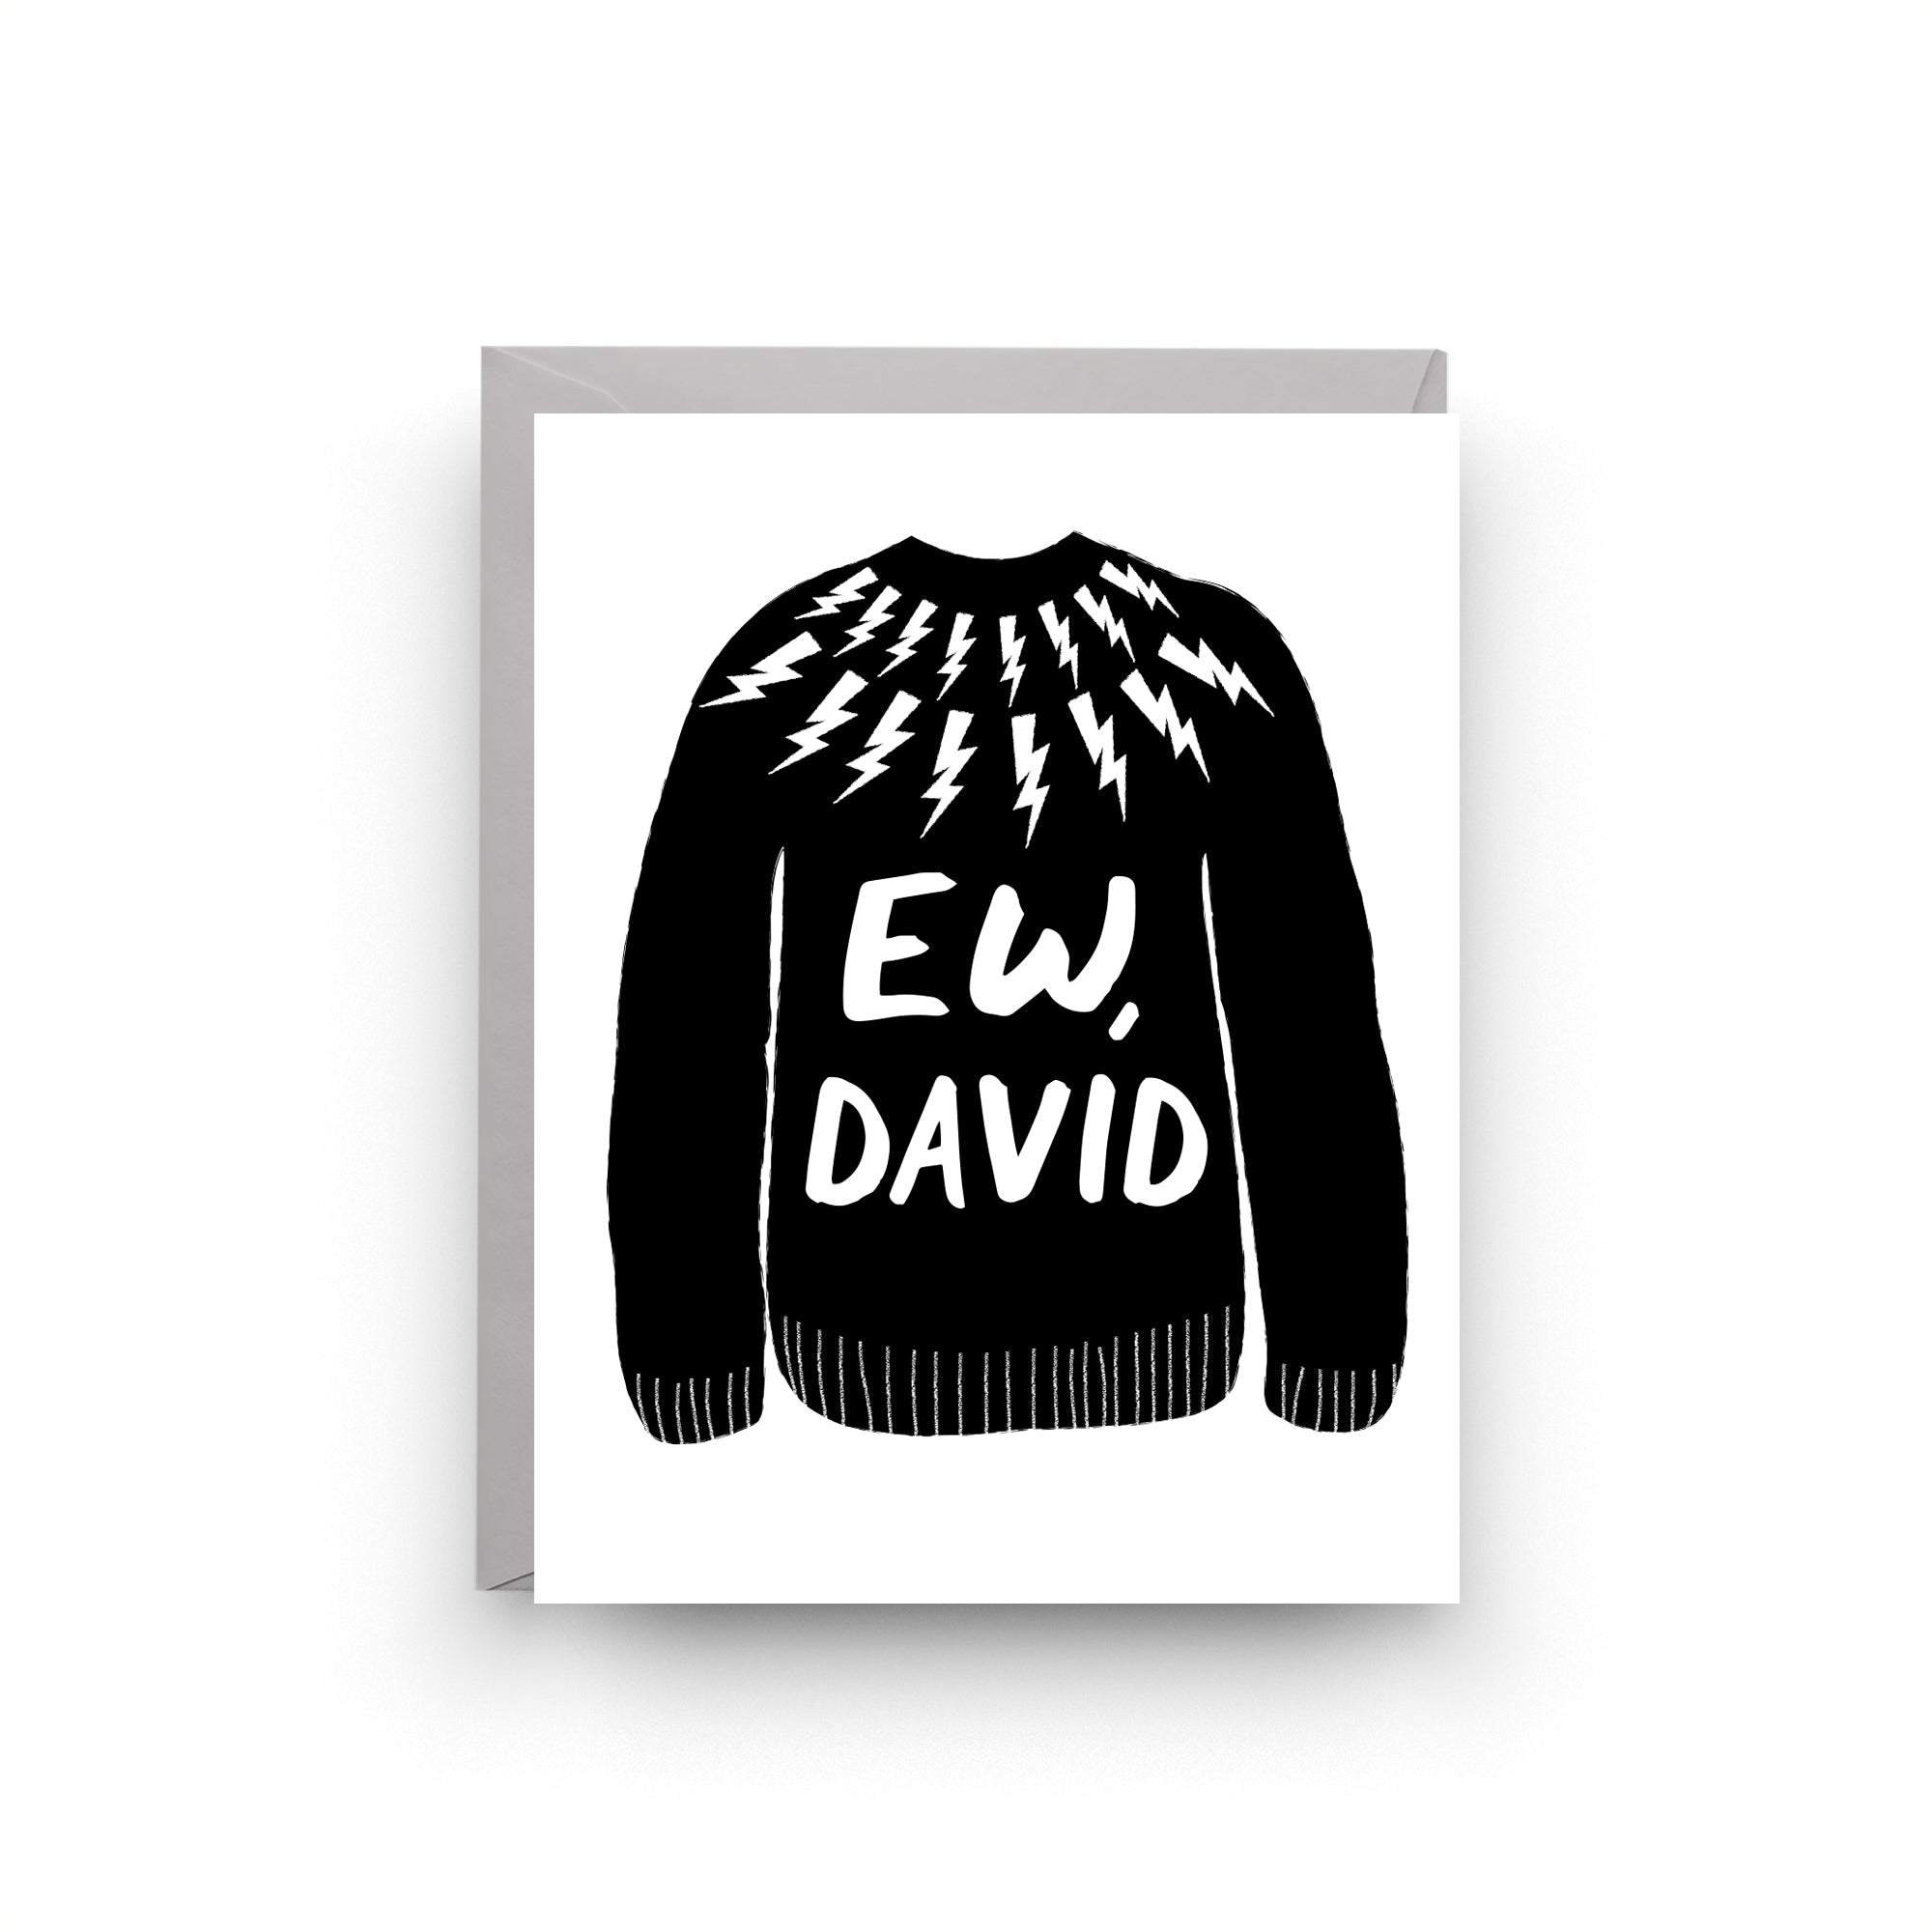 friendship card, bff card, funny cute card, cards for friends, ew david, funny birthday card, schitt's creek, funny birthday gift, david rose, alexa rose, schitt's creek card, LGBTQ card, quote card